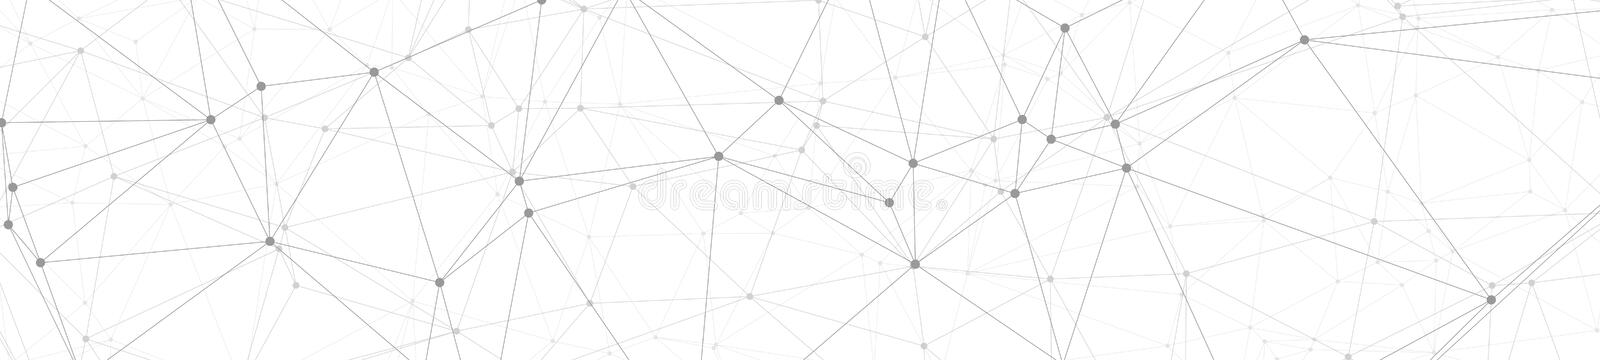 Digital network connections, grey creative graphic banner connected dots and lines vector illustration, white background stock illustration